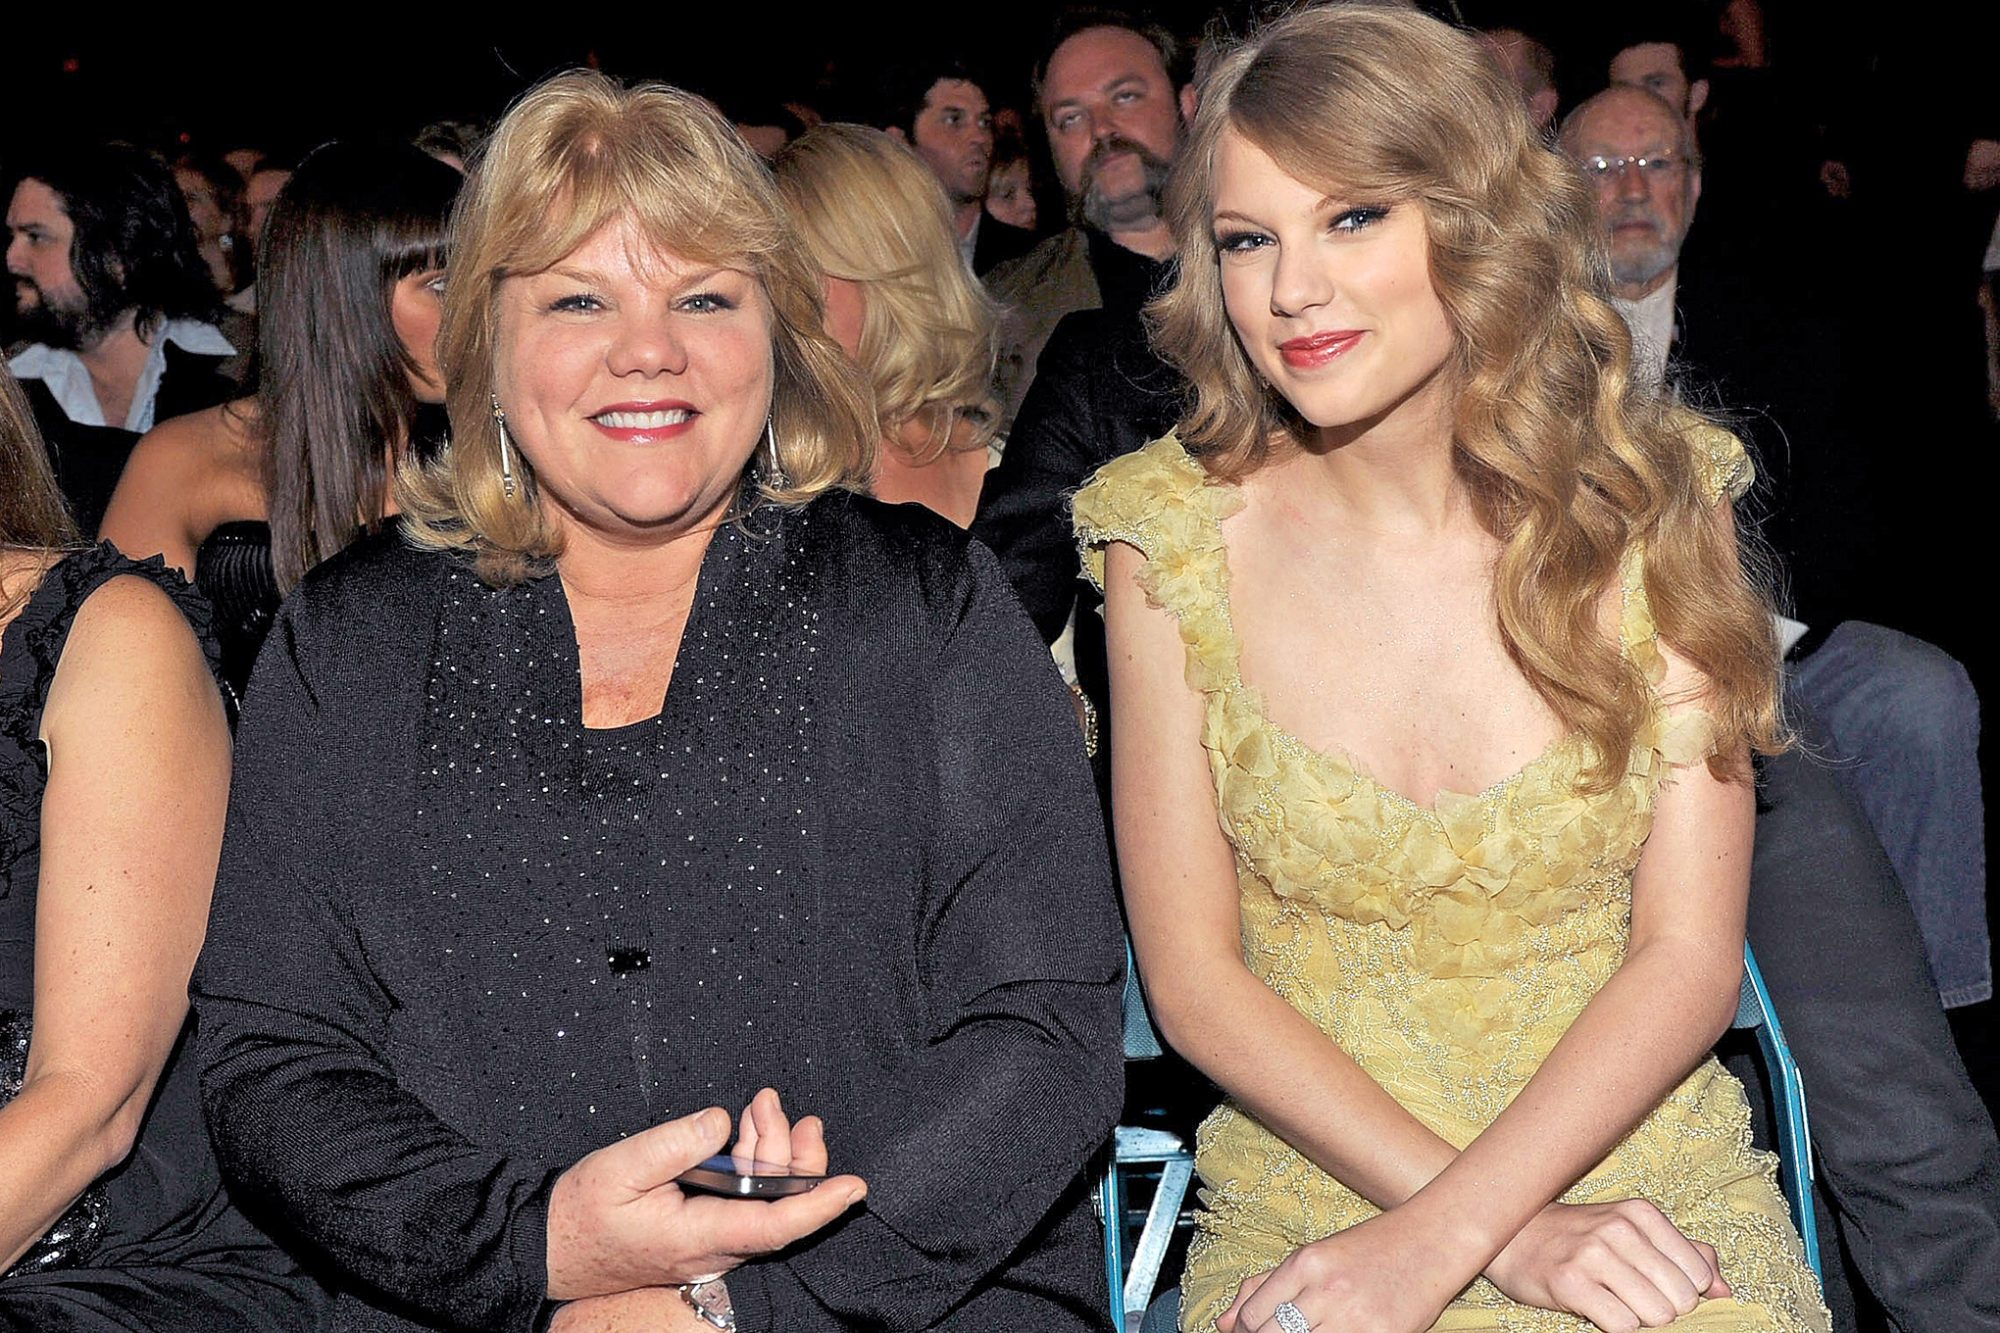 Taylor Swift writes about her mother's cancer diagnosis on Tumblr